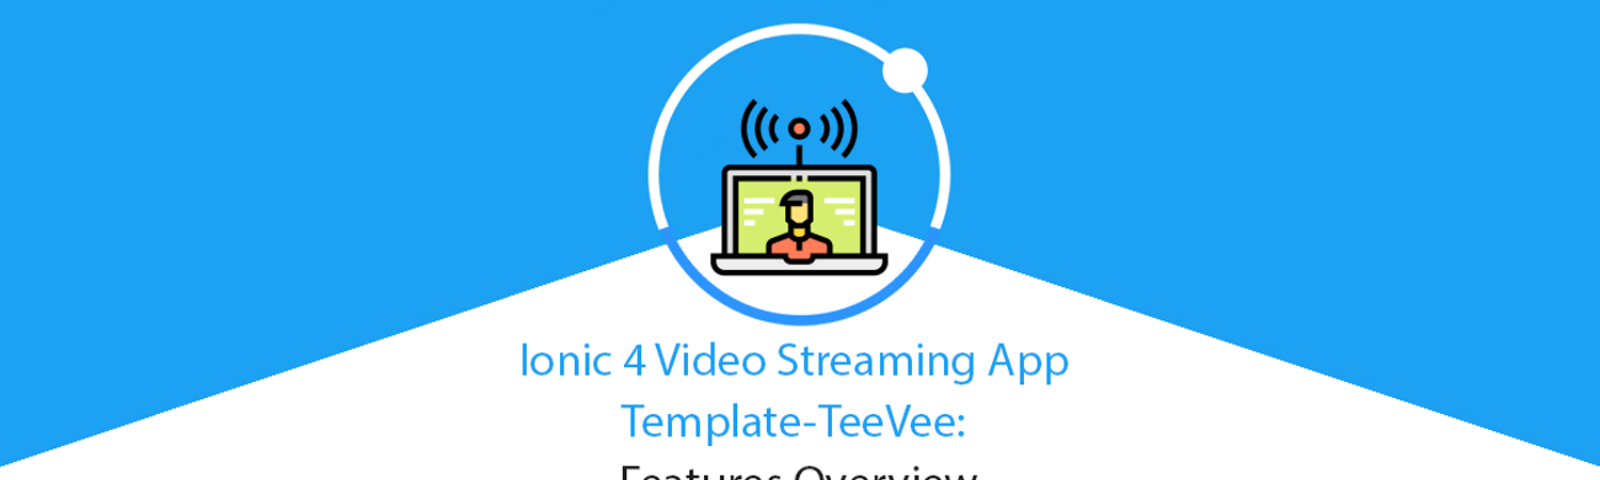 Ionic 4 Netflix Clone Video Streaming App Template: Features Overview